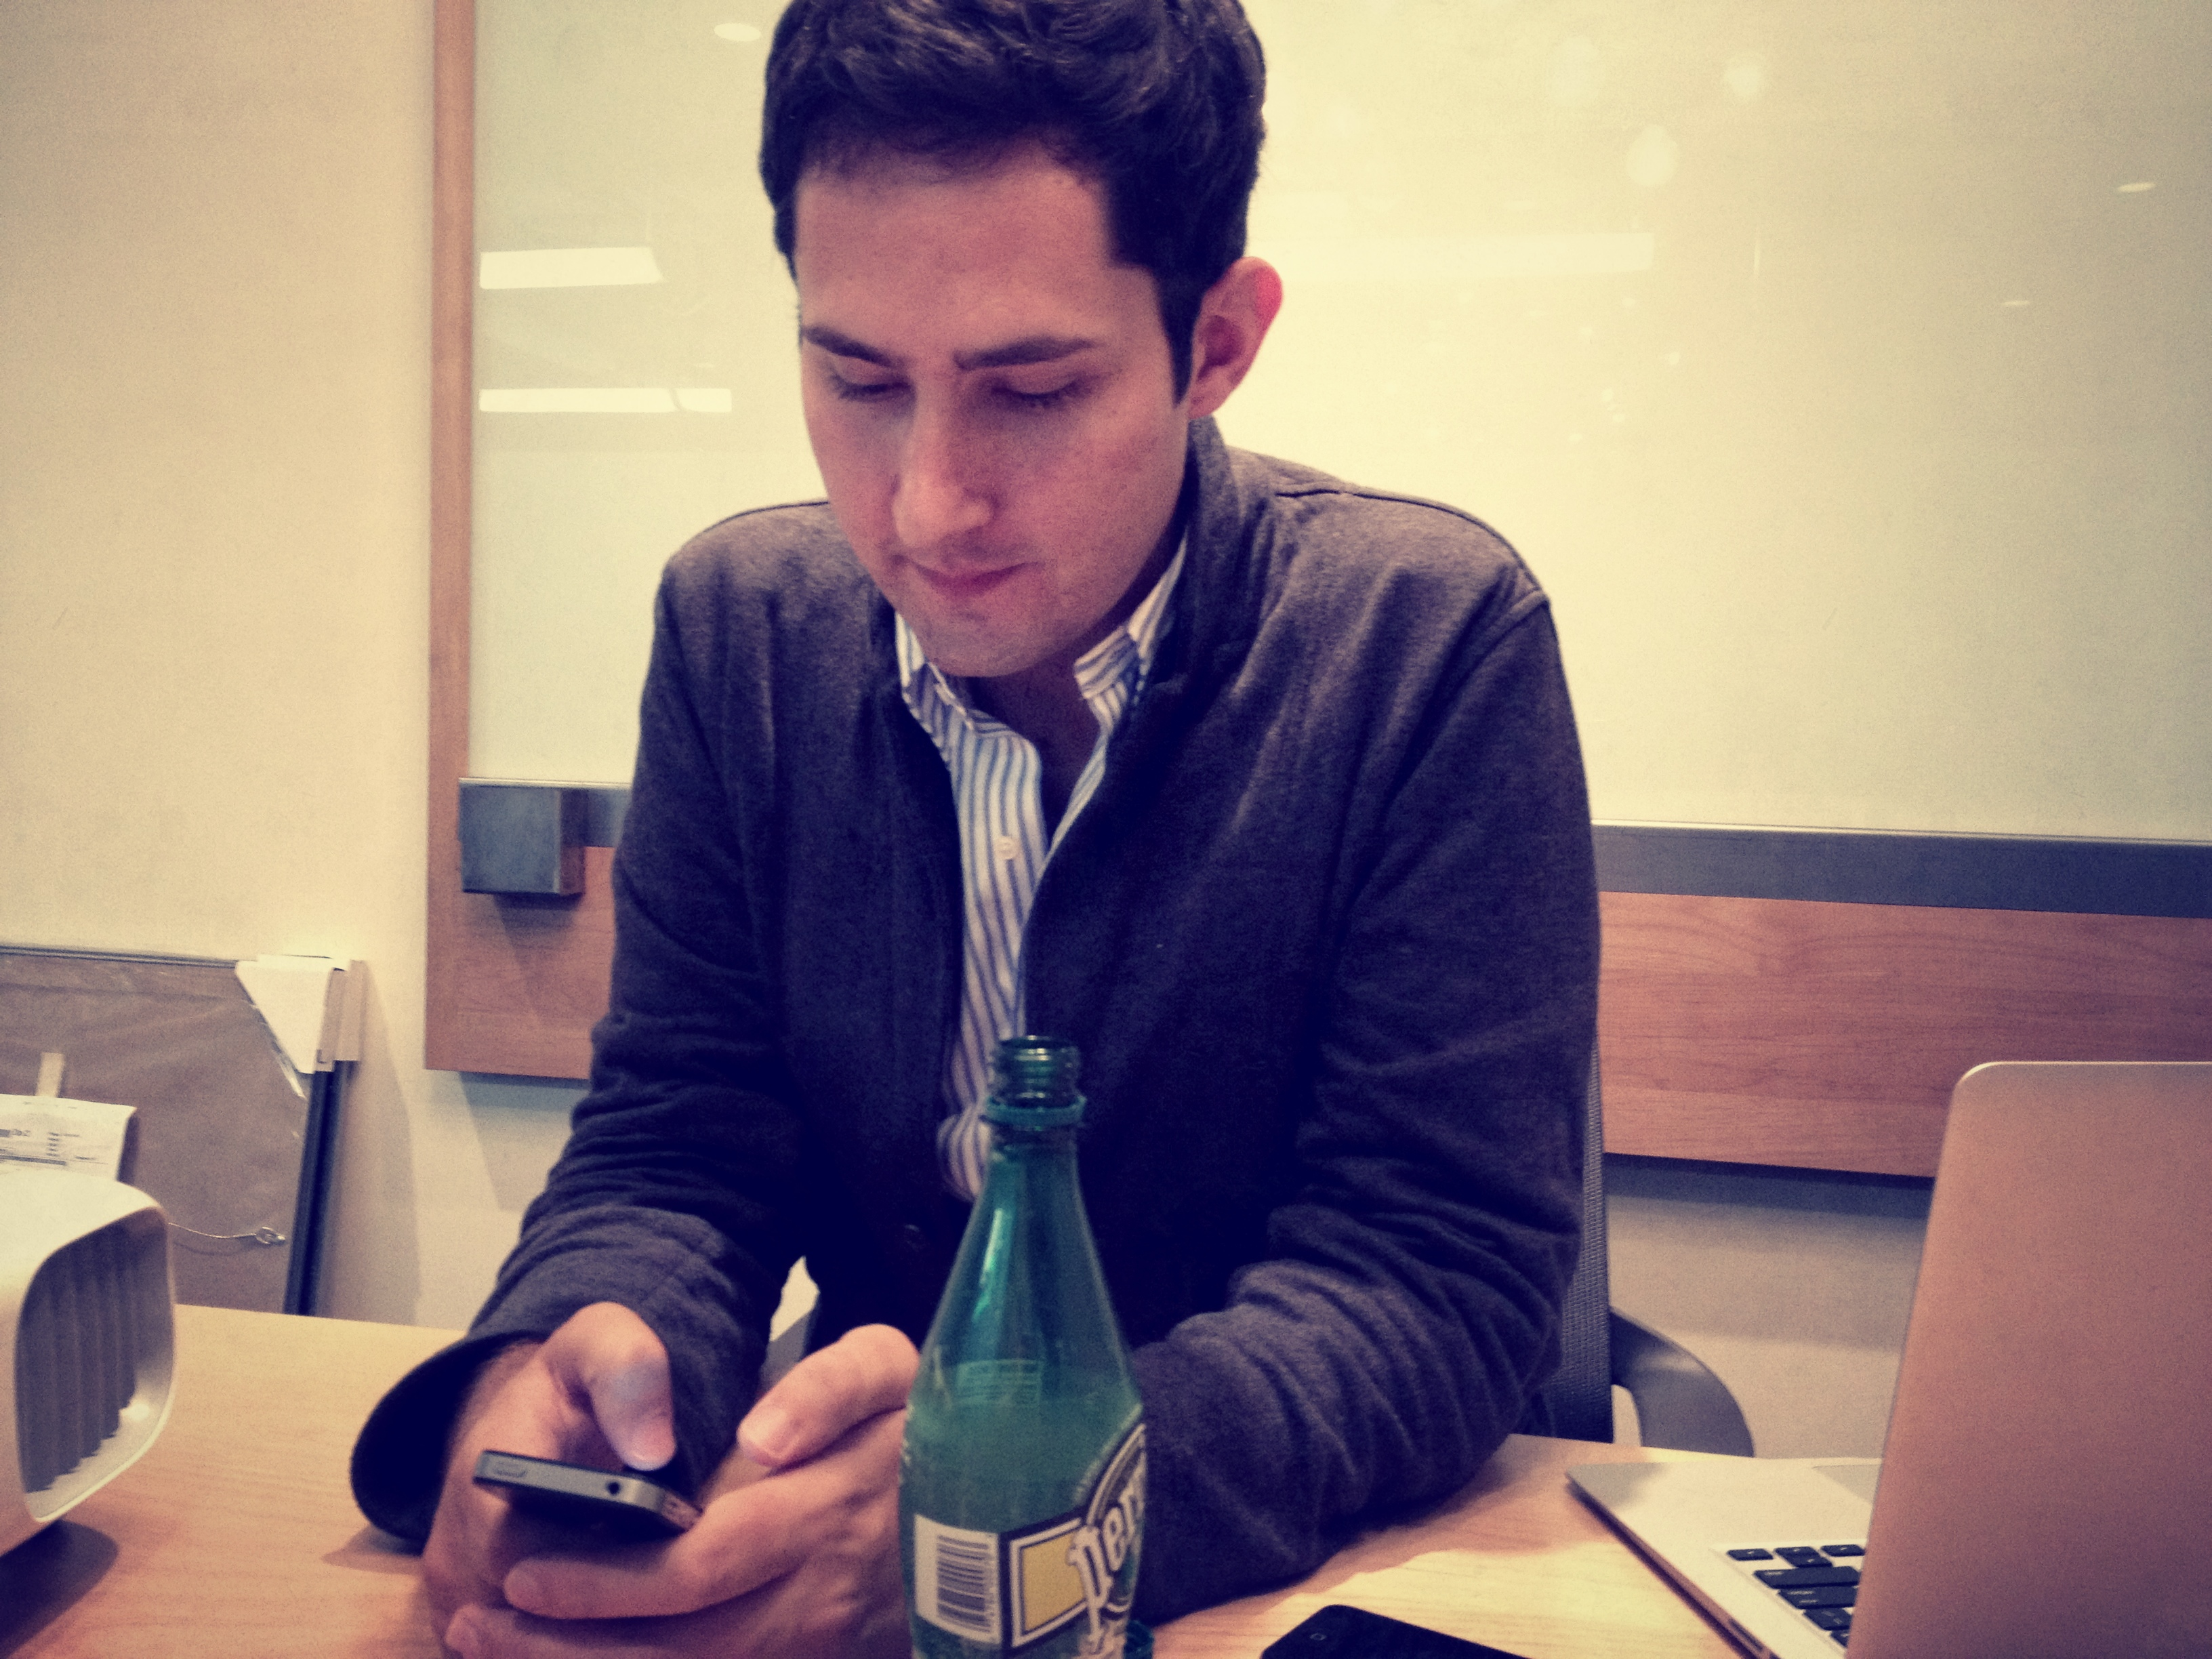 Instagram CEO/co-founder Kevin Systrom shows off version 3.0.